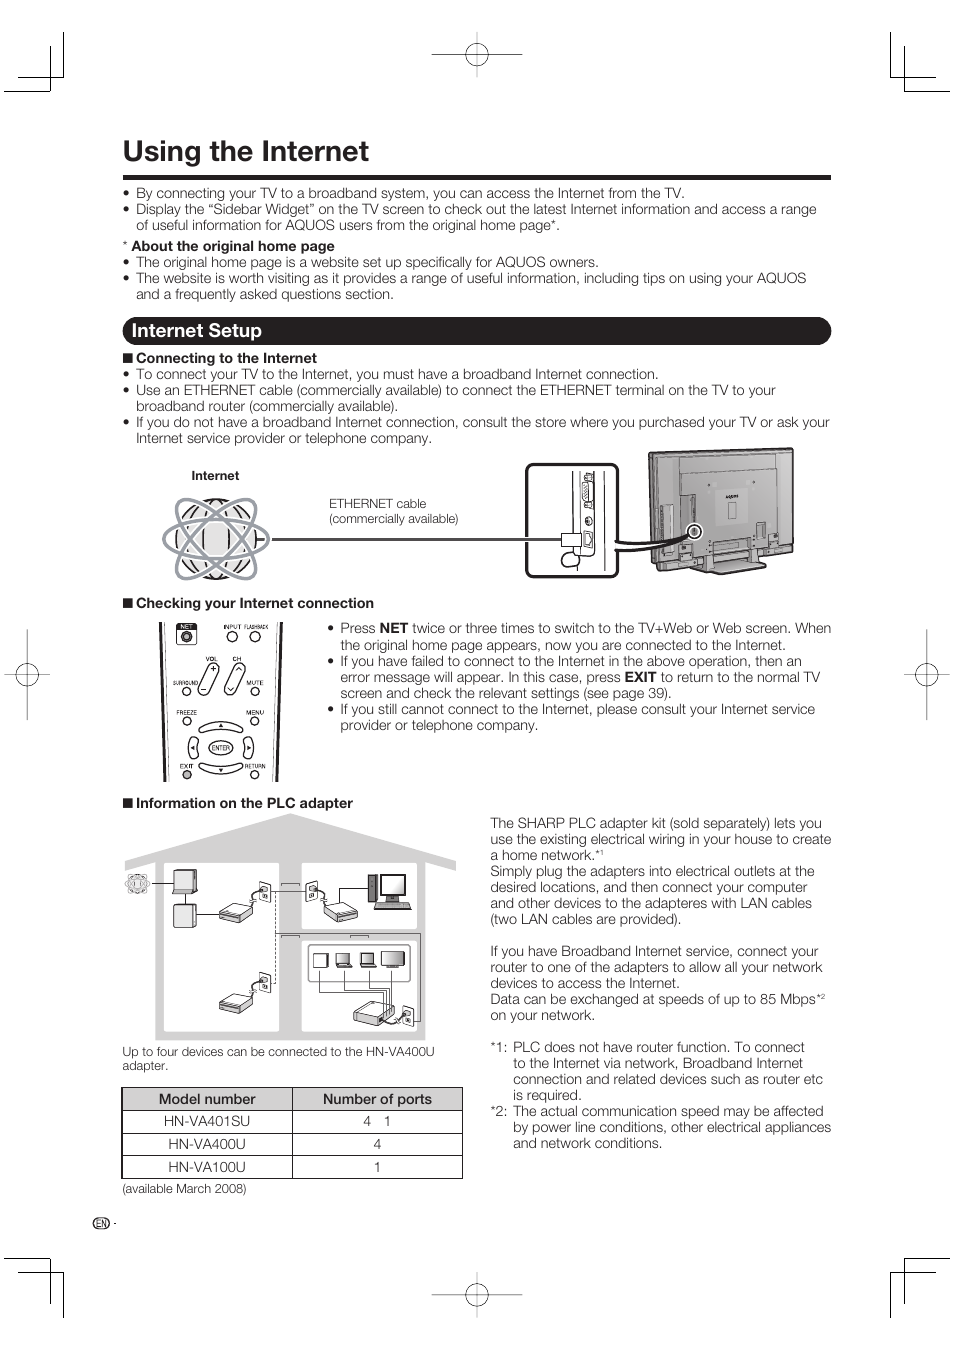 Using The Internet Setup Sharp Aquos Lc 52se94u User Broadband Connection Sharing Diagram Manual Page 40 59